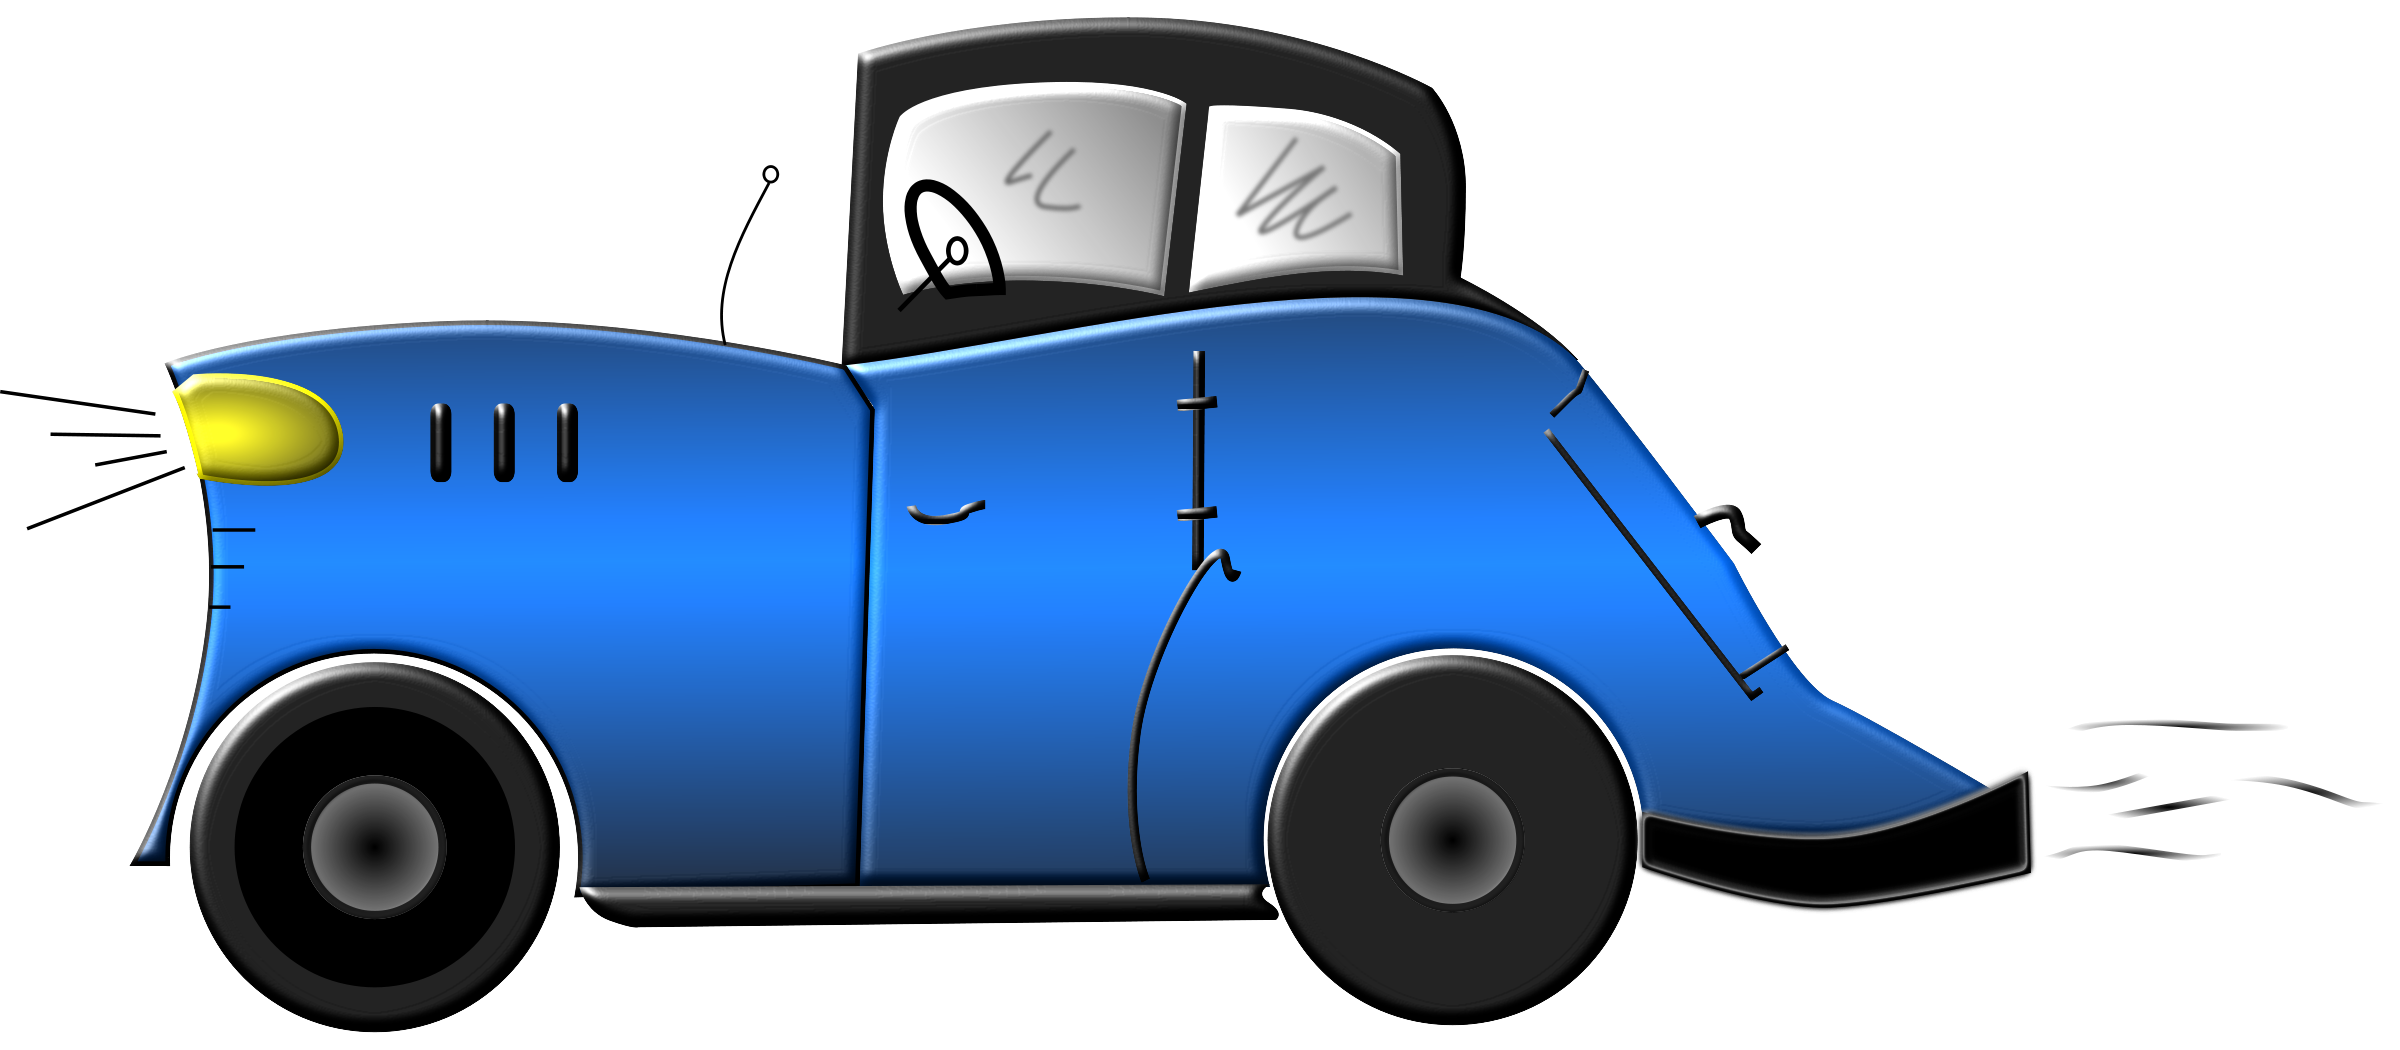 Clipart car jack clipart royalty free stock Cool Car Clipart   Free download best Cool Car Clipart on ClipArtMag.com clipart royalty free stock